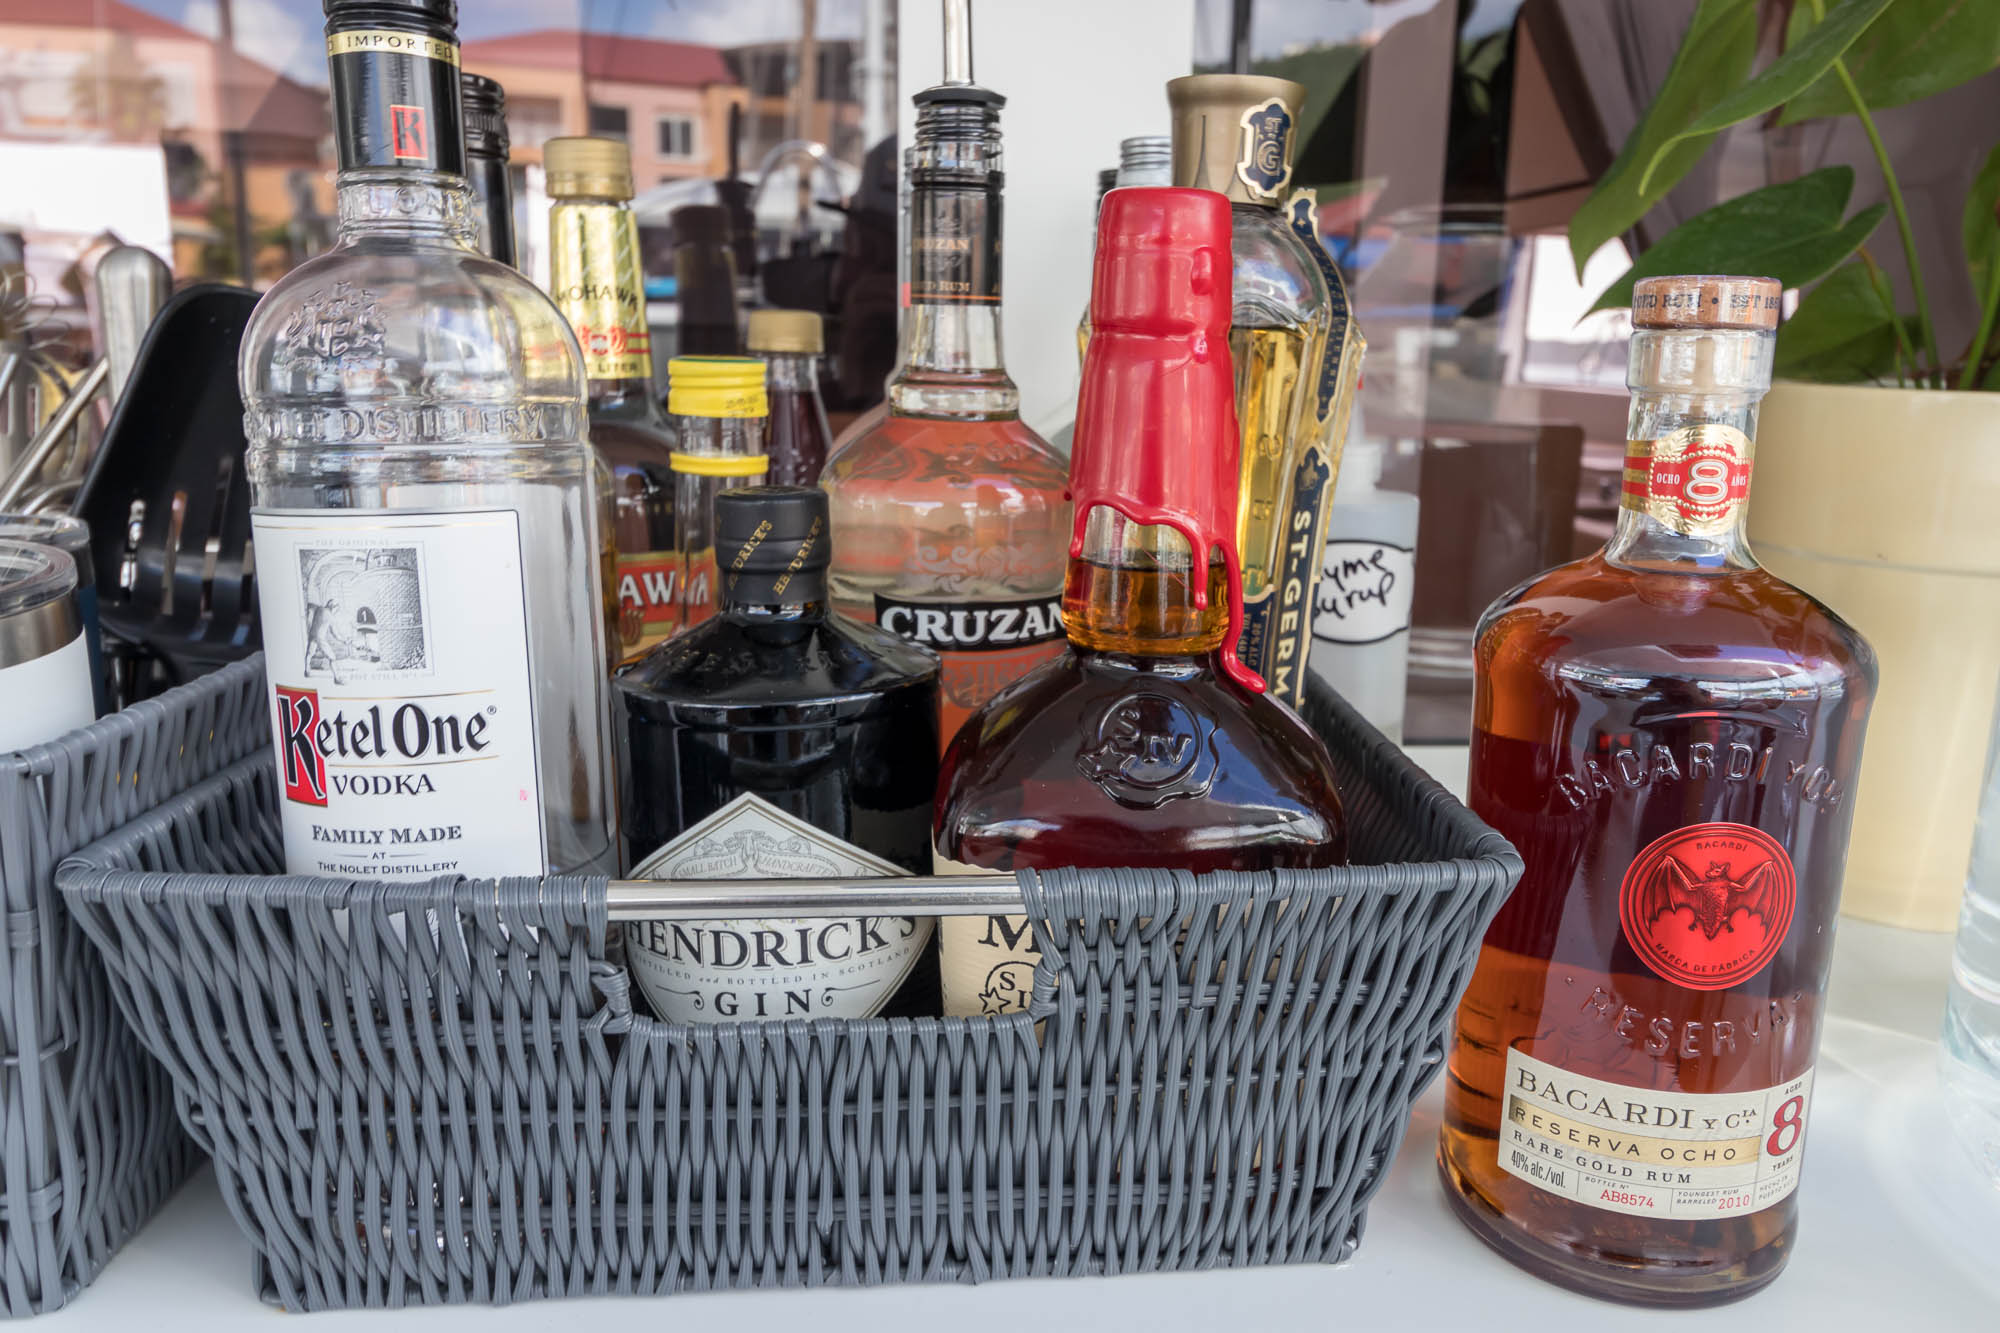 Standard bar aboard Floatation Therapy includes premium spirits such as Ketel One, Hendricks and Maker's Mark